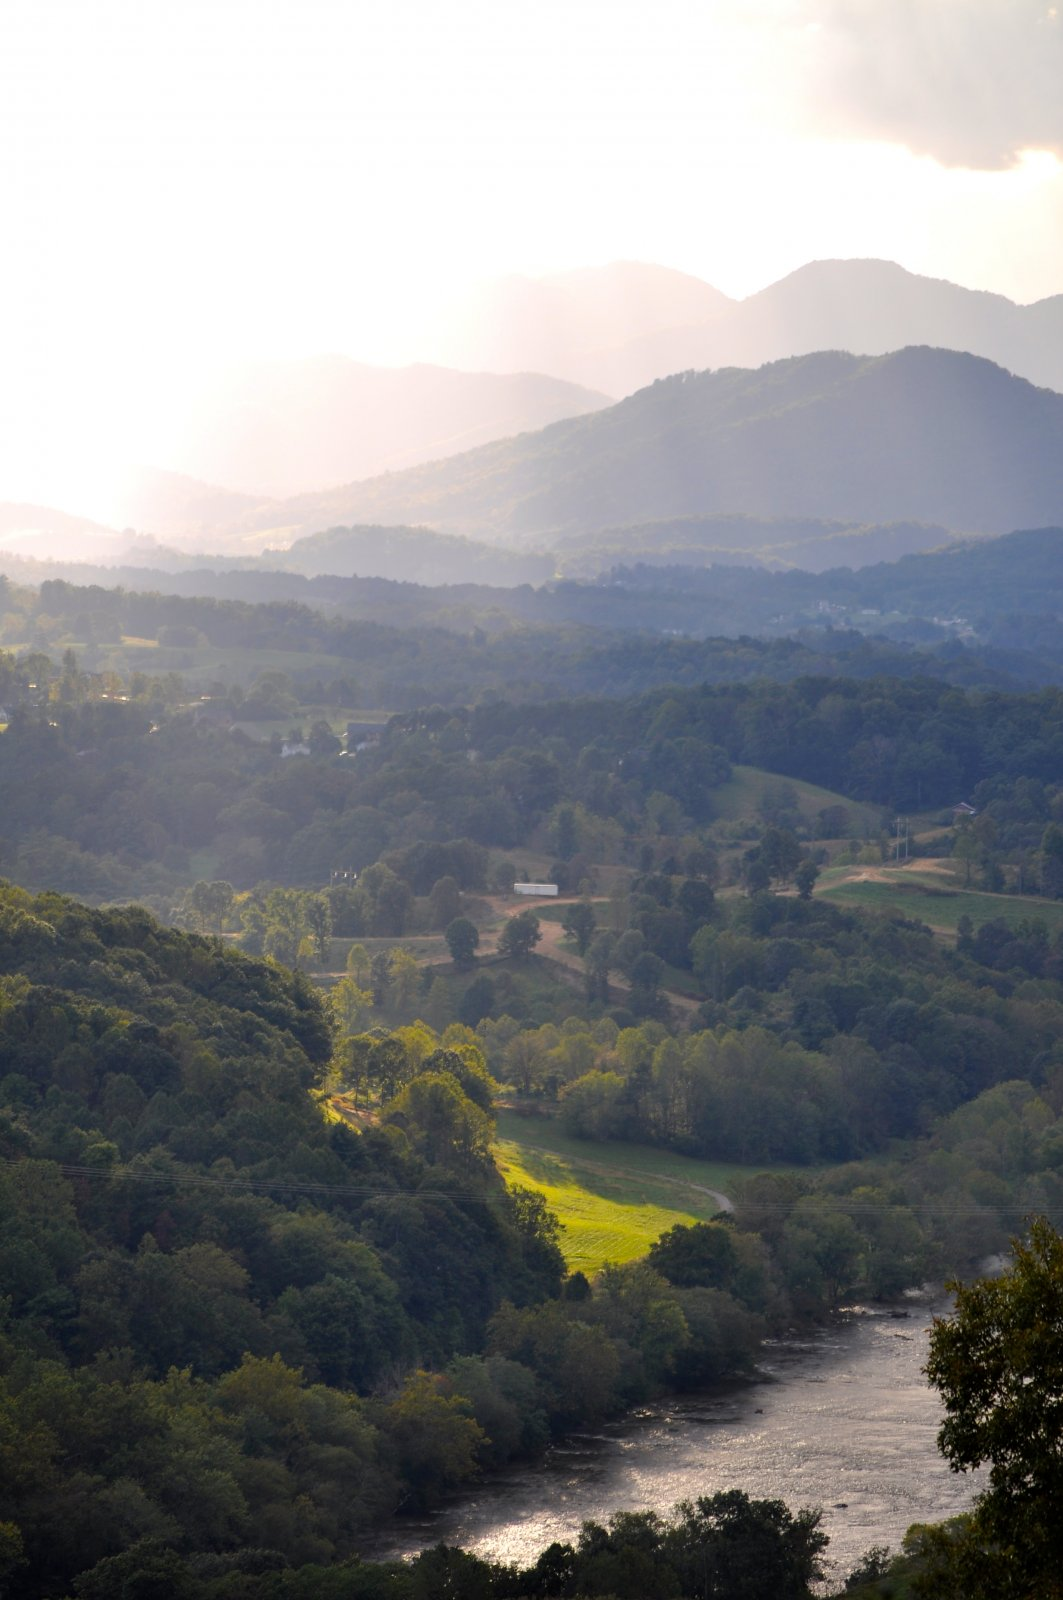 Click image for larger version  Name:Asheville view 4.jpg Views:105 Size:188.3 KB ID:131229